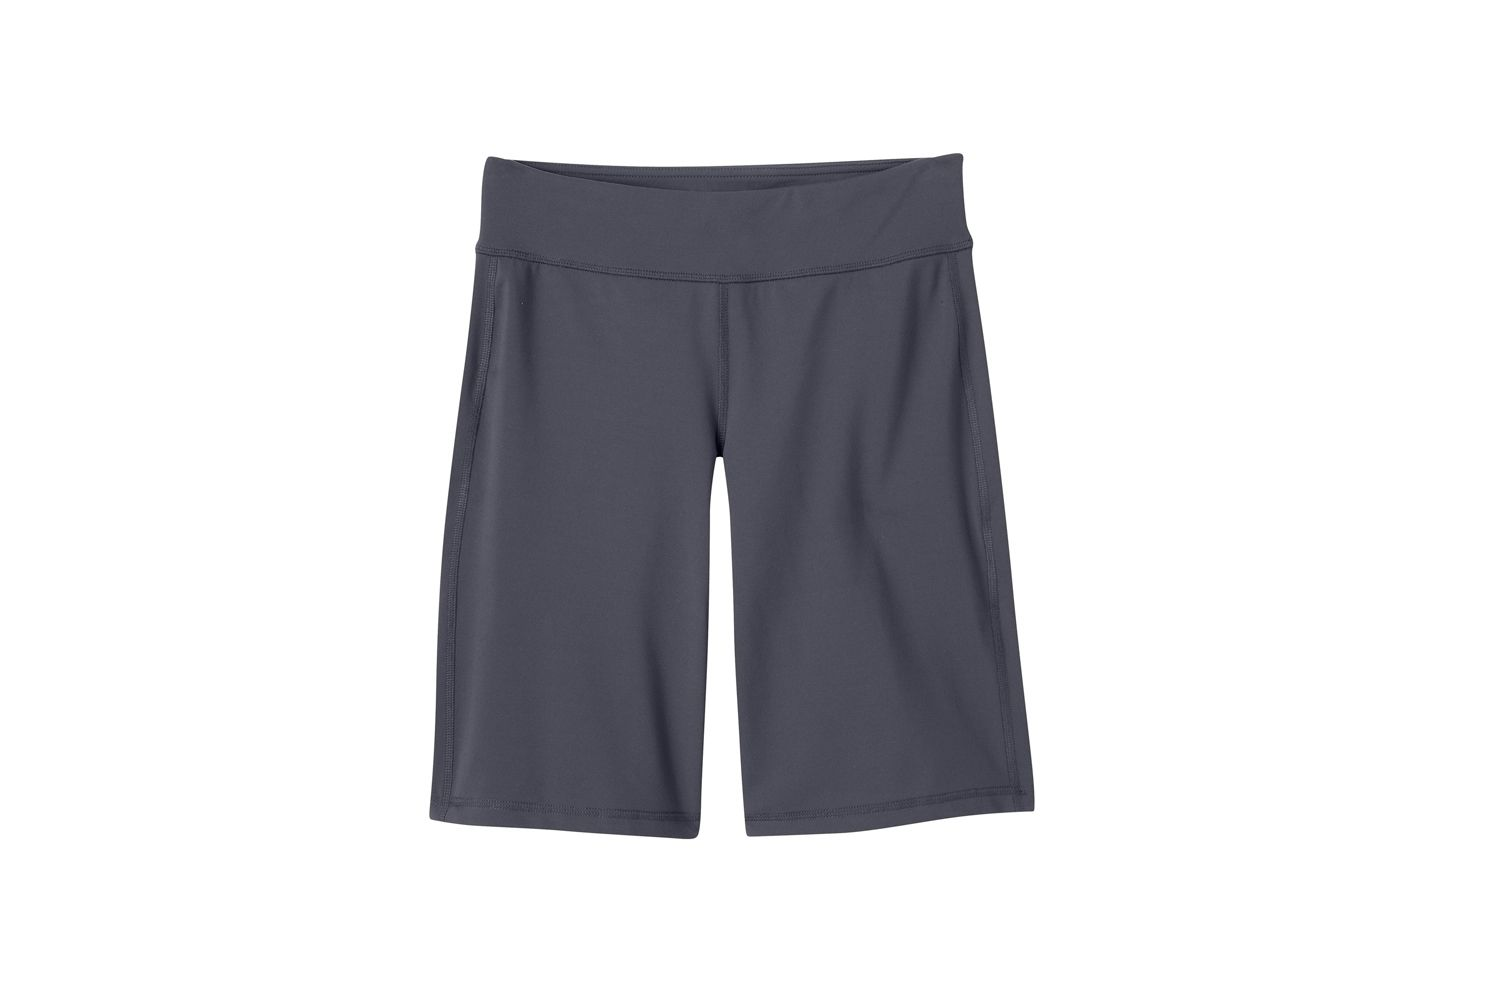 bb1666bfe06e81 Athleta Kickbooty Bermuda. Photo Courtesy of Athleta